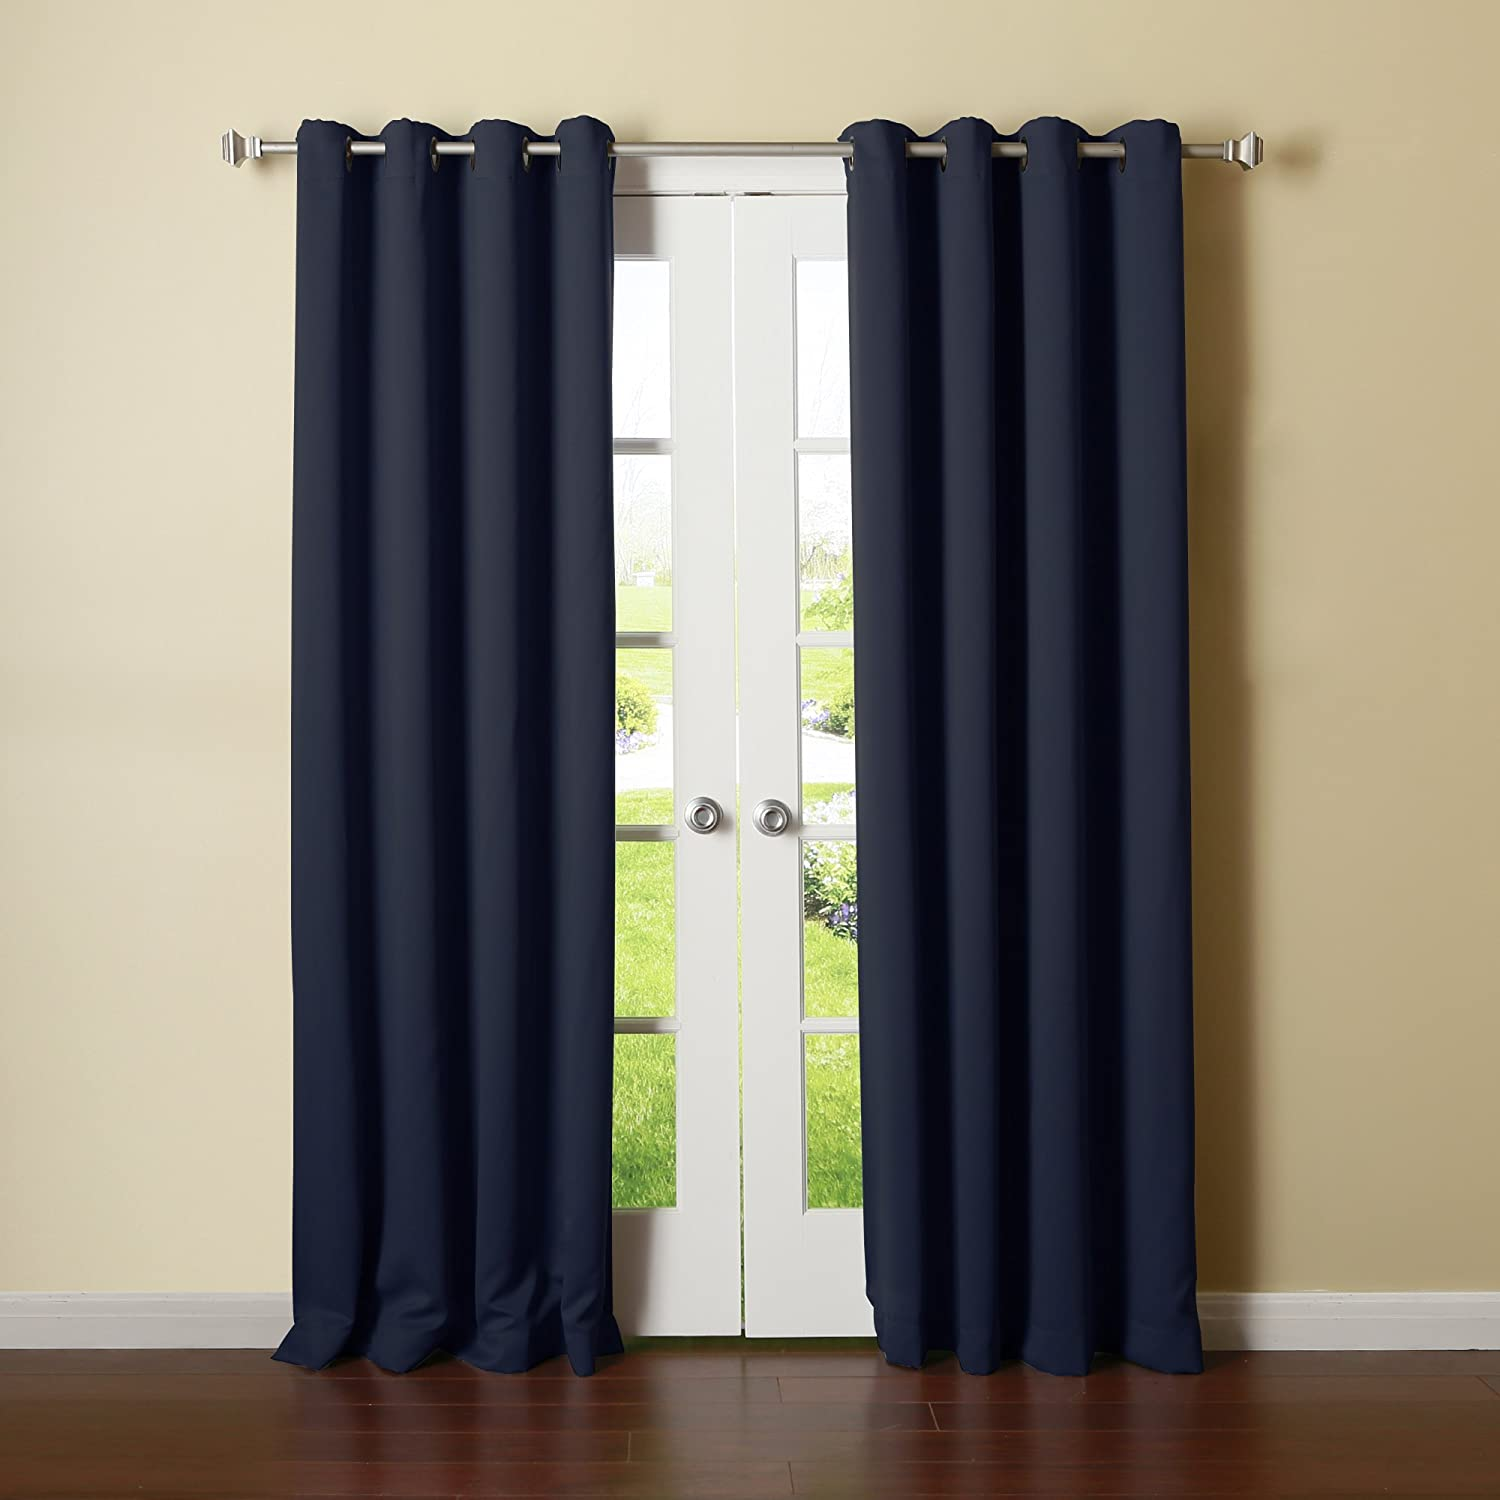 amazon charming of blackout download walmart curtains curtain perfect room thermal image drapes living